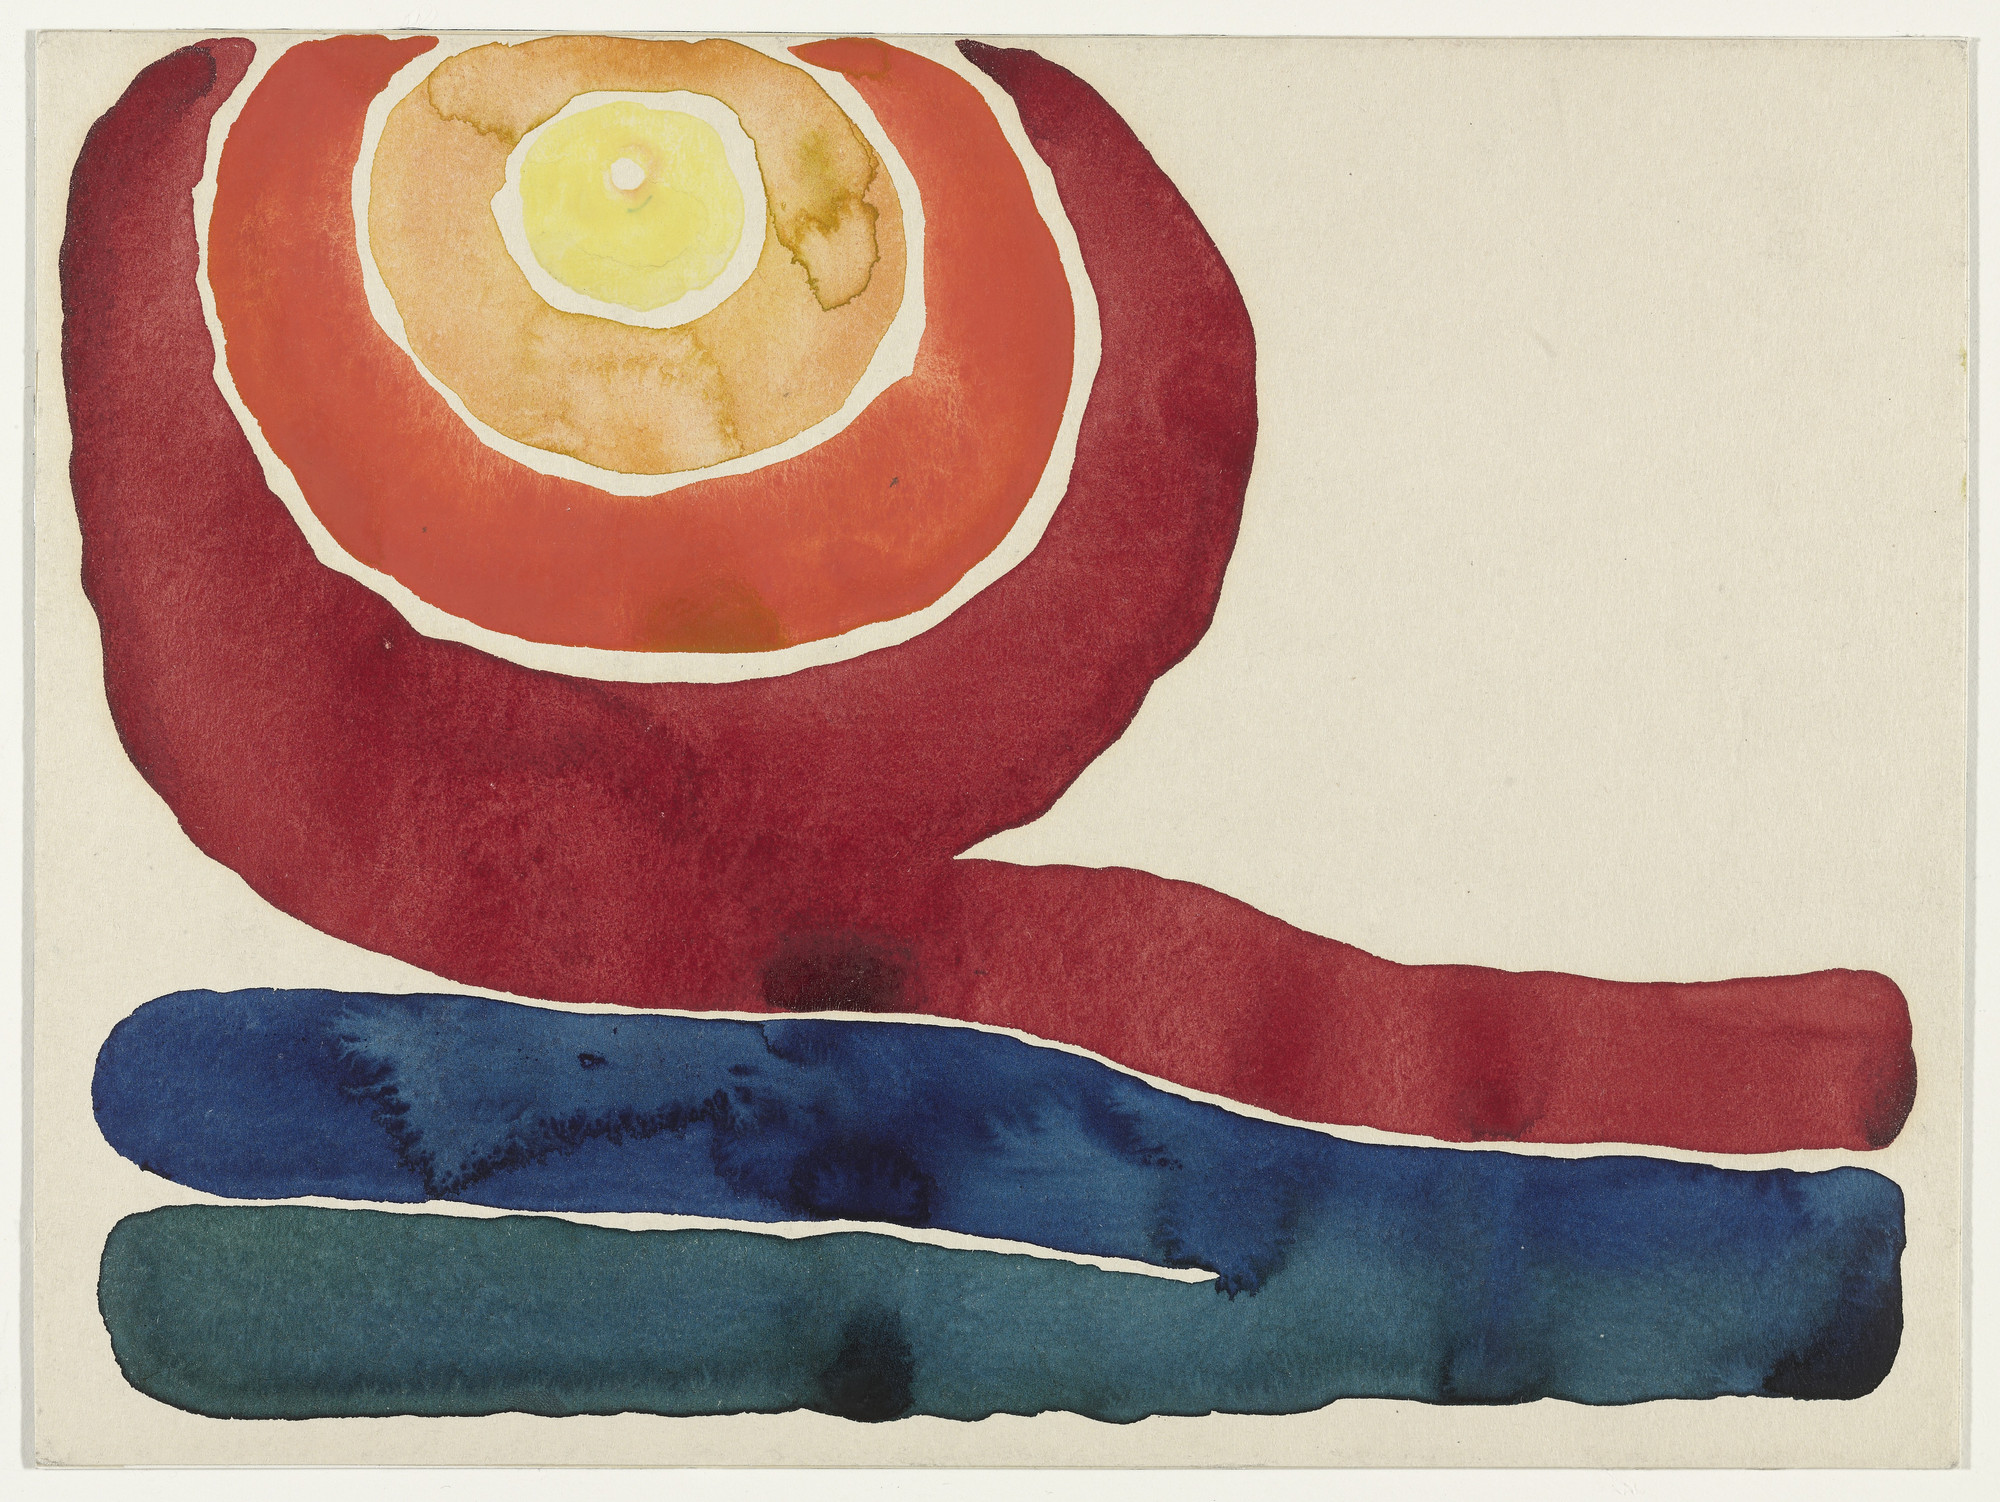 Georgia O'Keeffe. Evening Star No. III. 1917